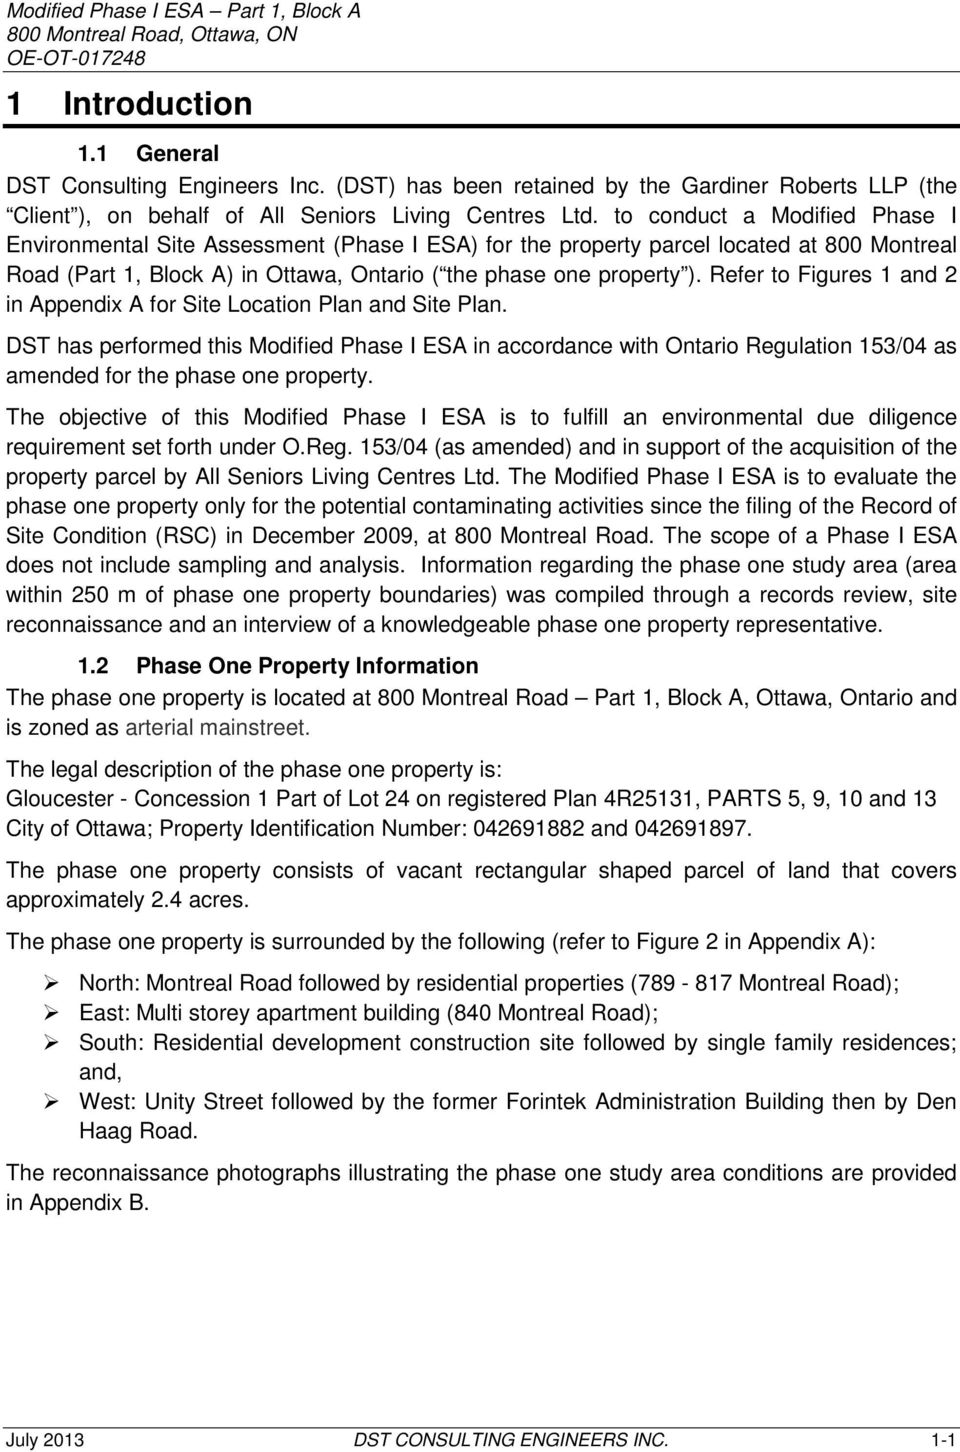 to conduct a Modified Phase I Environmental Site Assessment (Phase I ESA) for the property parcel located at 800 Montreal Road (Part 1, Block A) in Ottawa, Ontario ( the phase one property ).